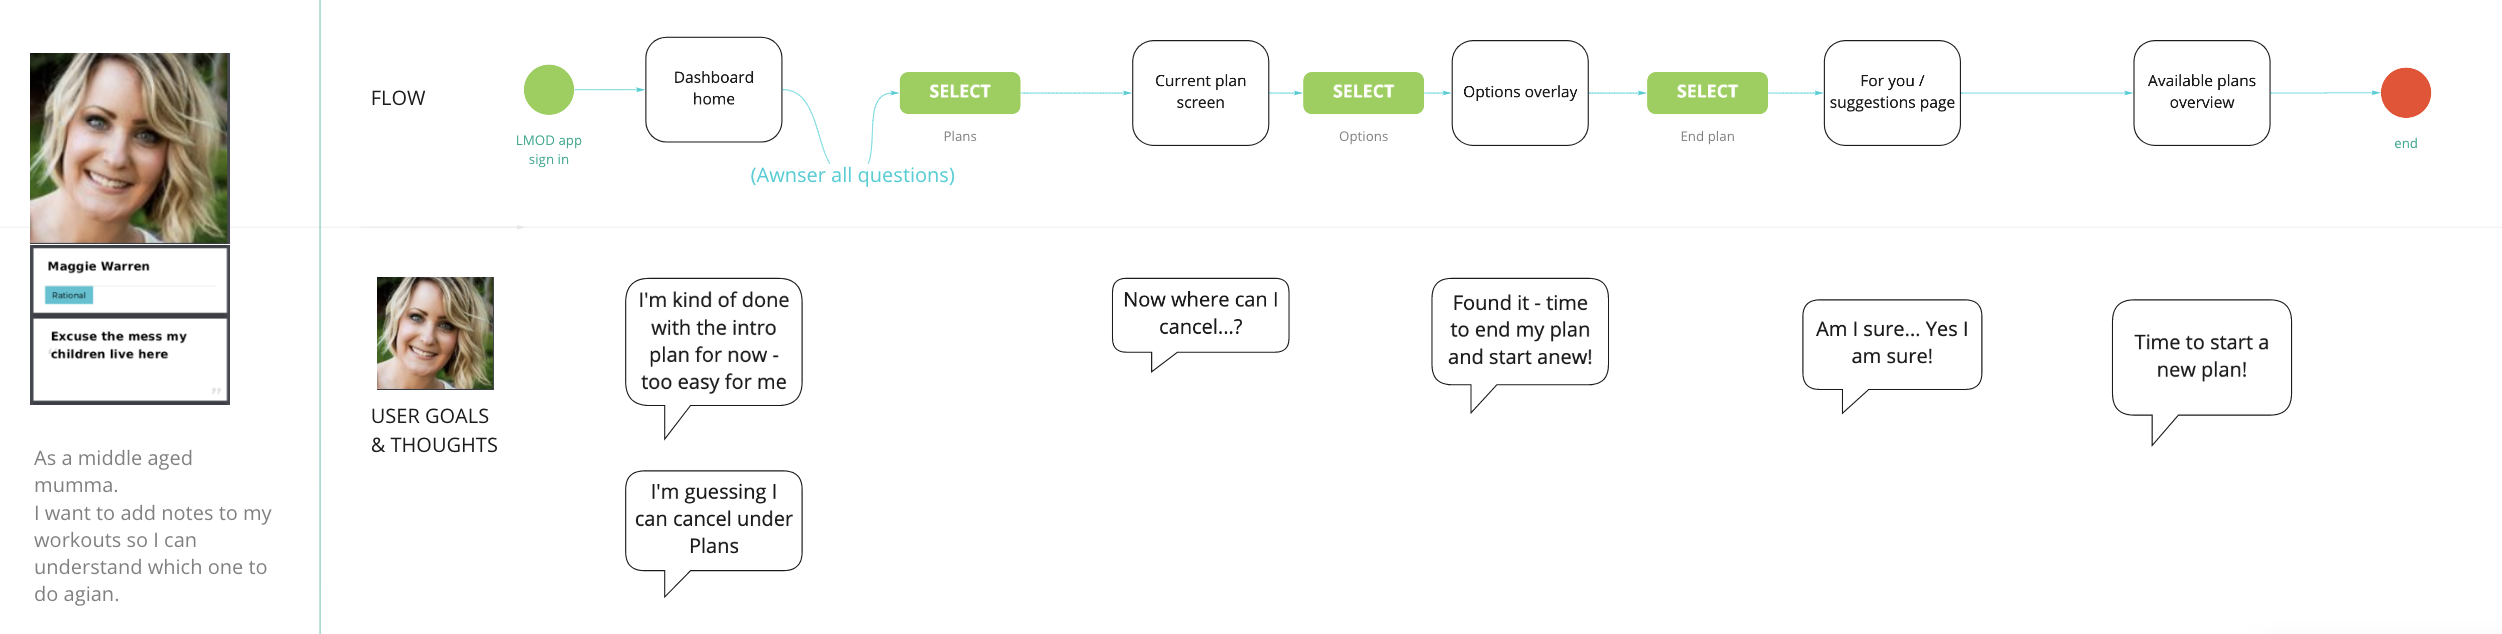 User flow with persona